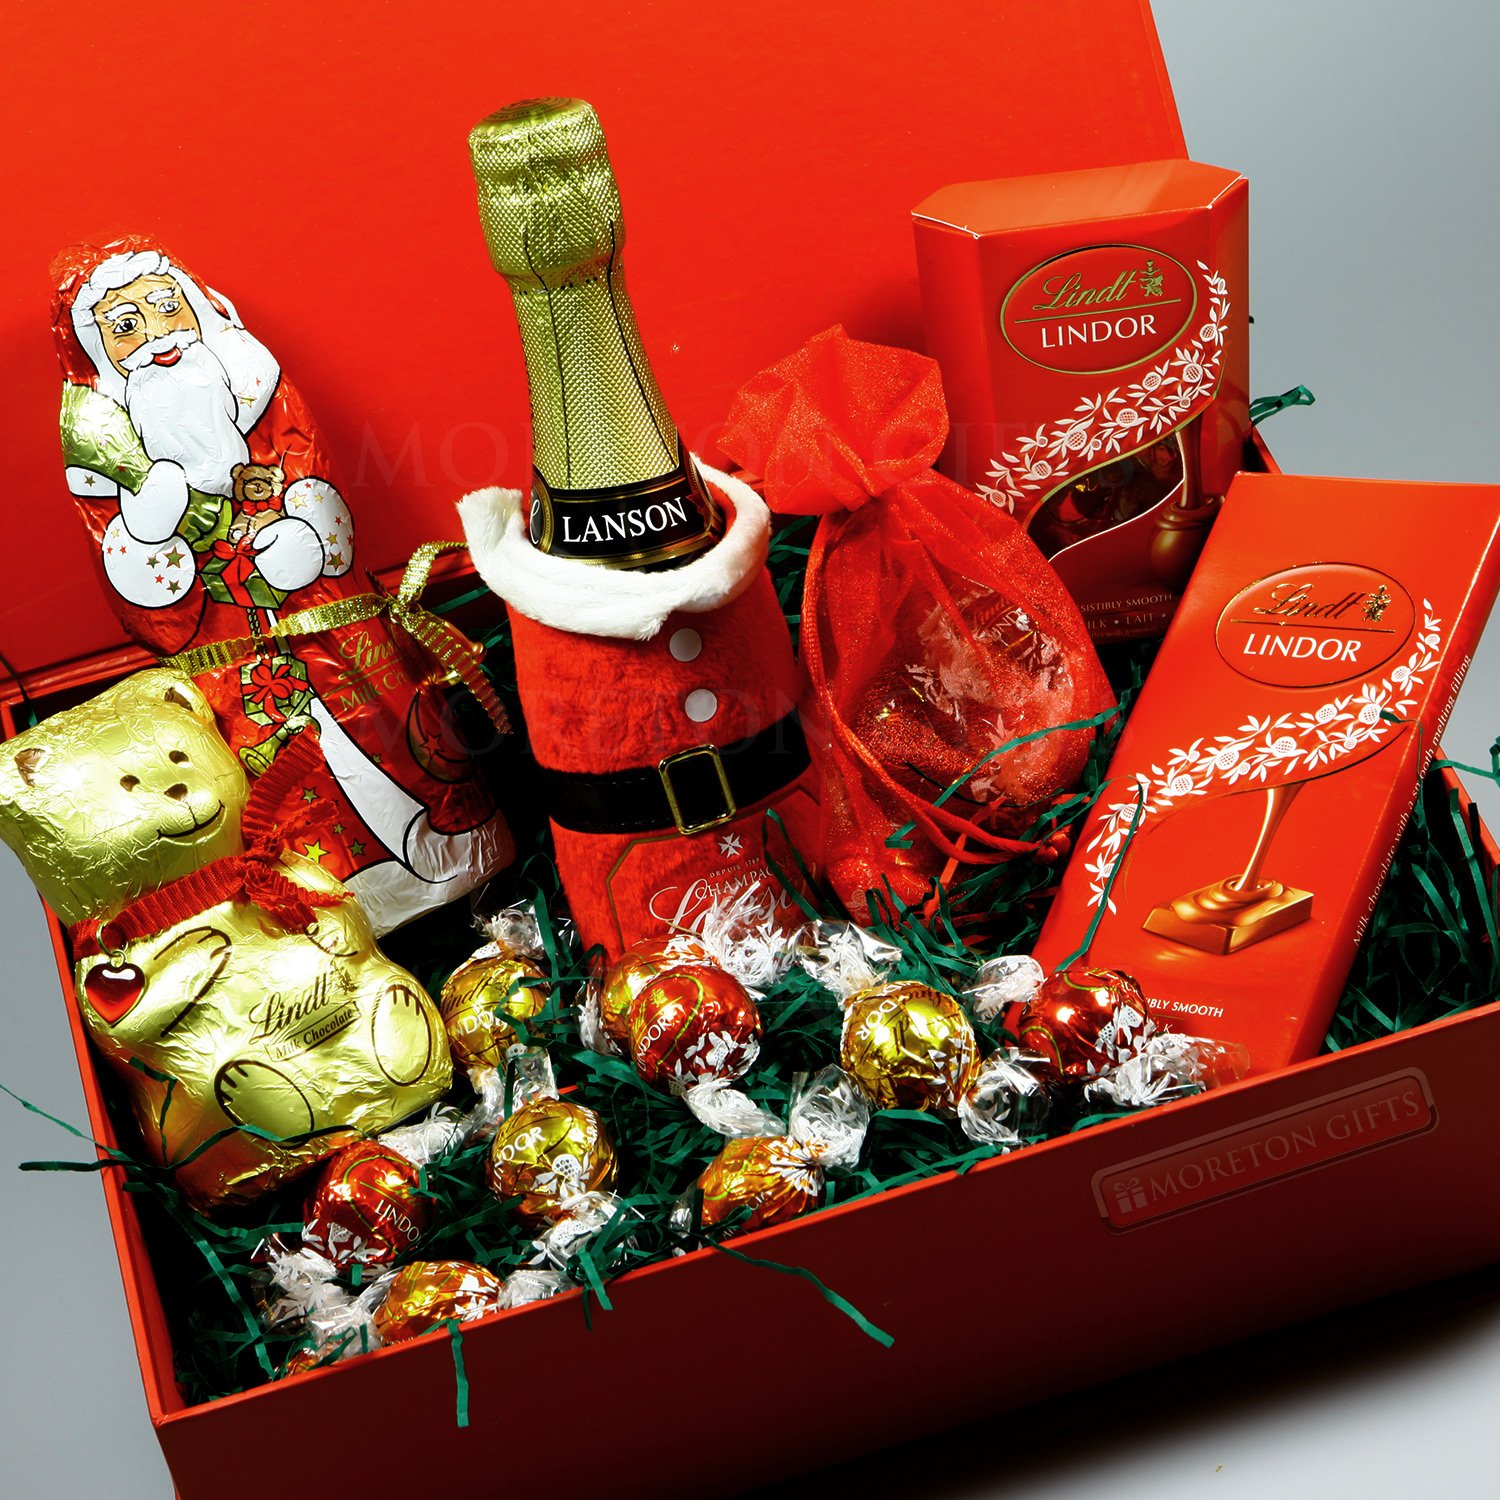 Lanson Champagne and Lindt Chocolate Christmas Gift Box -Lanson ...